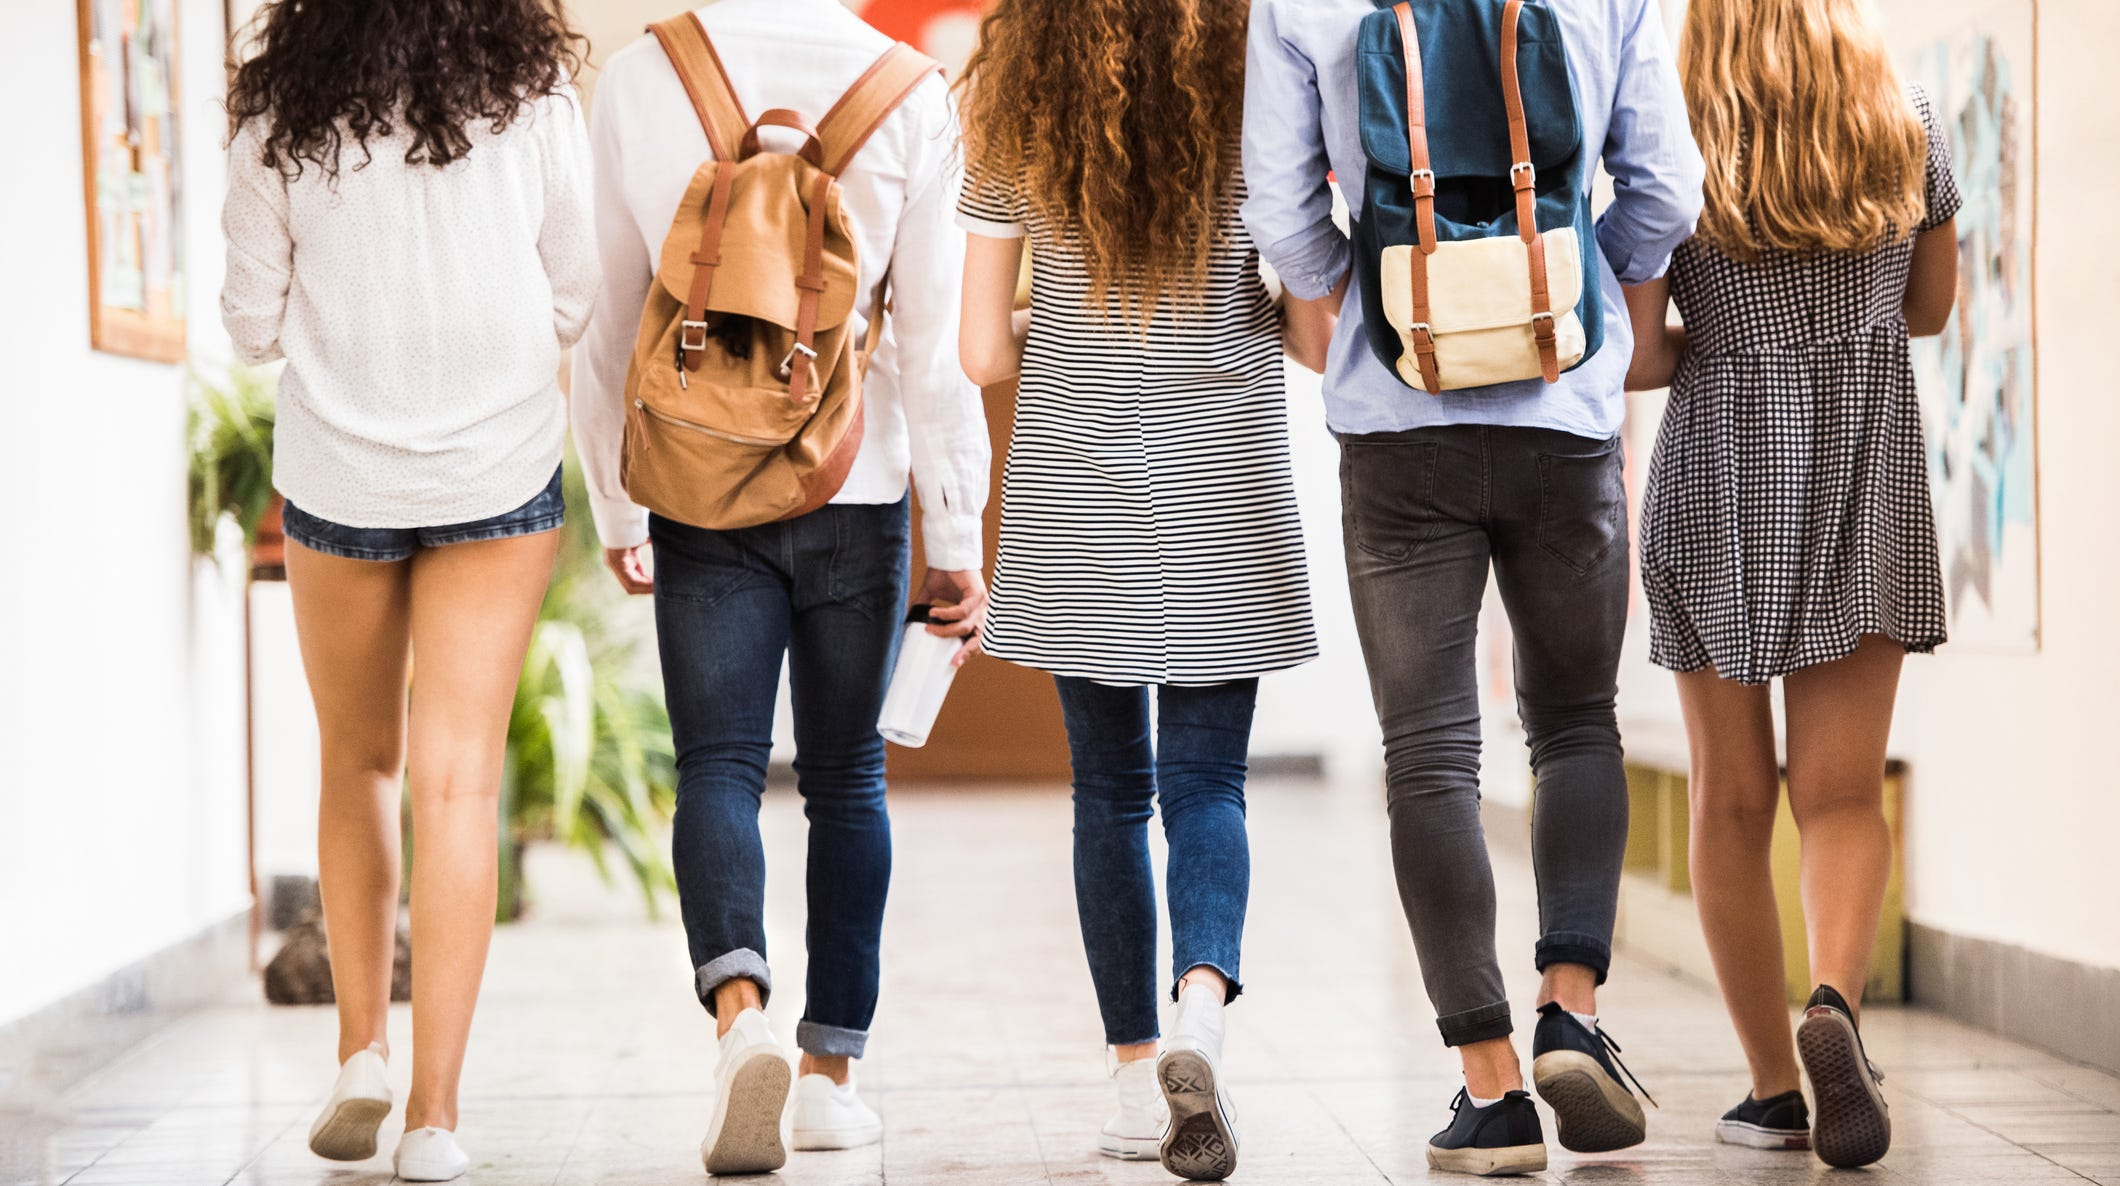 One San Francisco Bay area school district has a possible solution to ongoing dress code issues: Let students wear what they want.